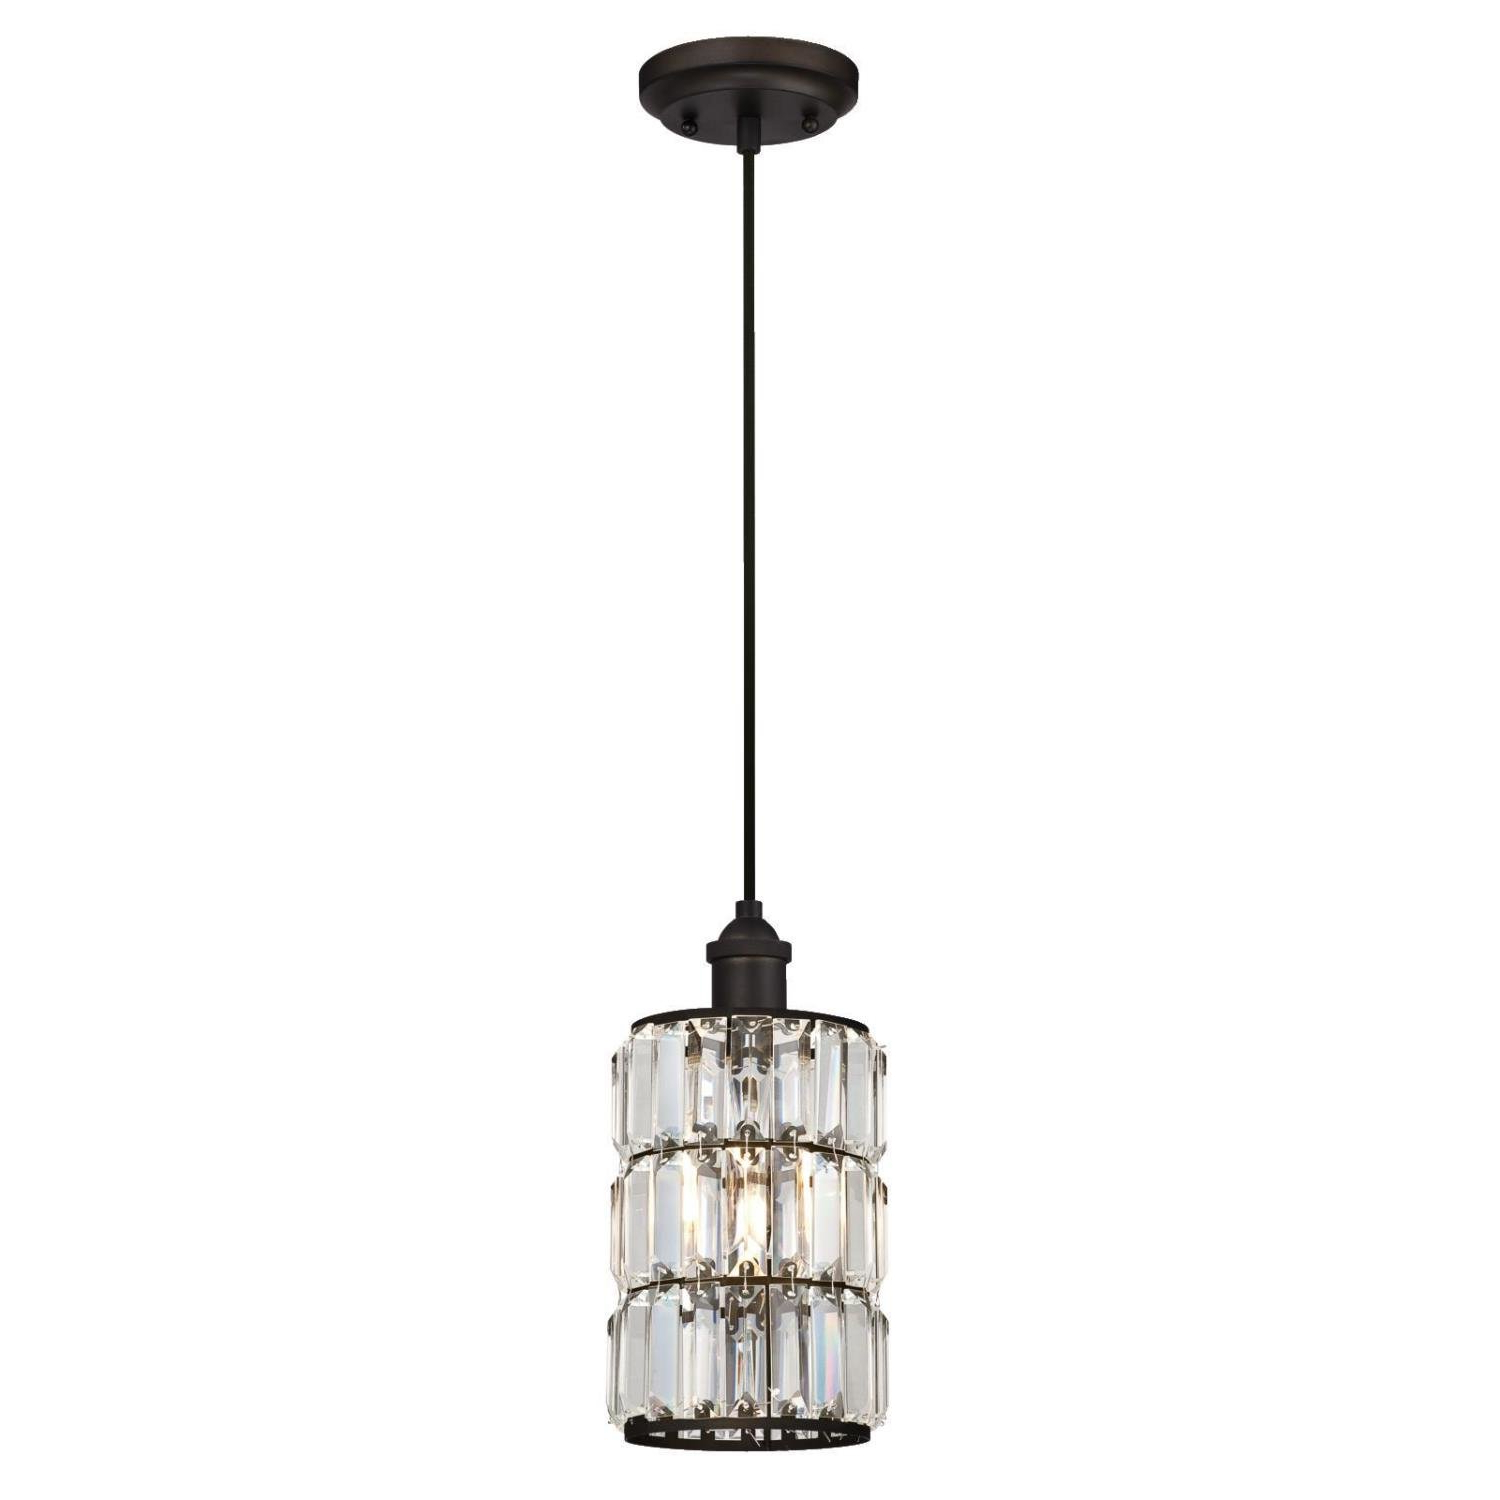 2020 Hurst 1 Light Single Cylinder Pendants With Baxley 1 Light Single Cylinder Pendant (View 1 of 20)